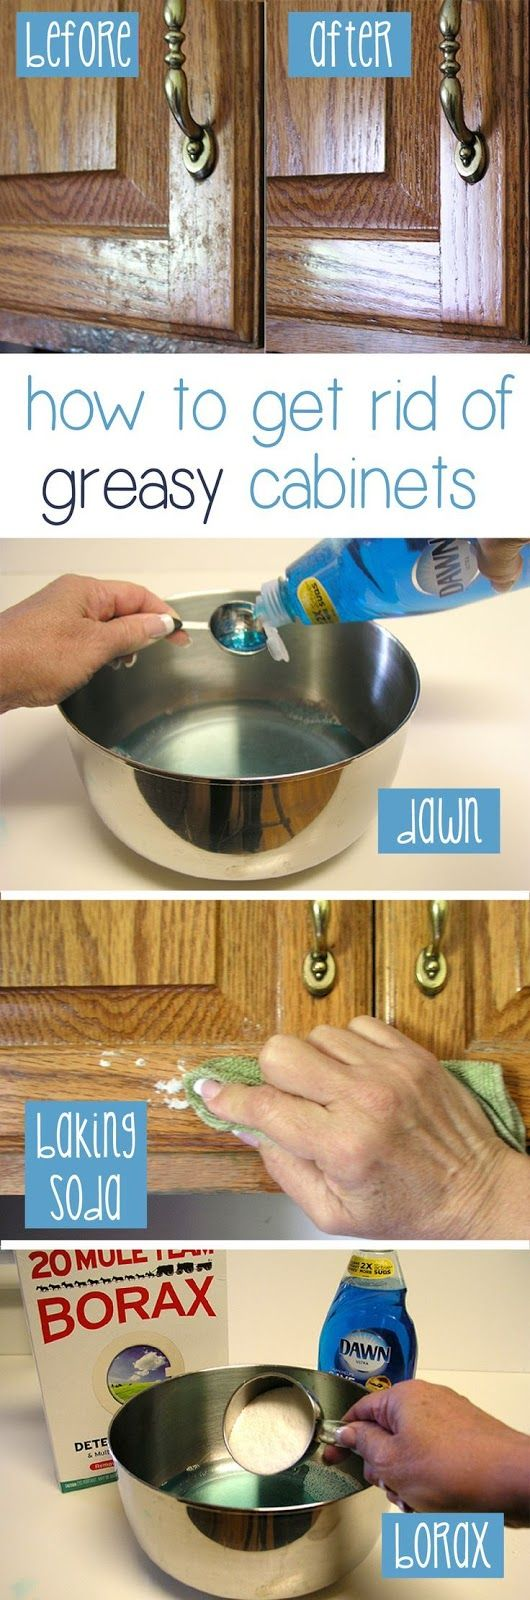 How to clean grease from kitchen cabinet doors cabinets doors and cabinet doors - How to clean grease on kitchen cabinets ...